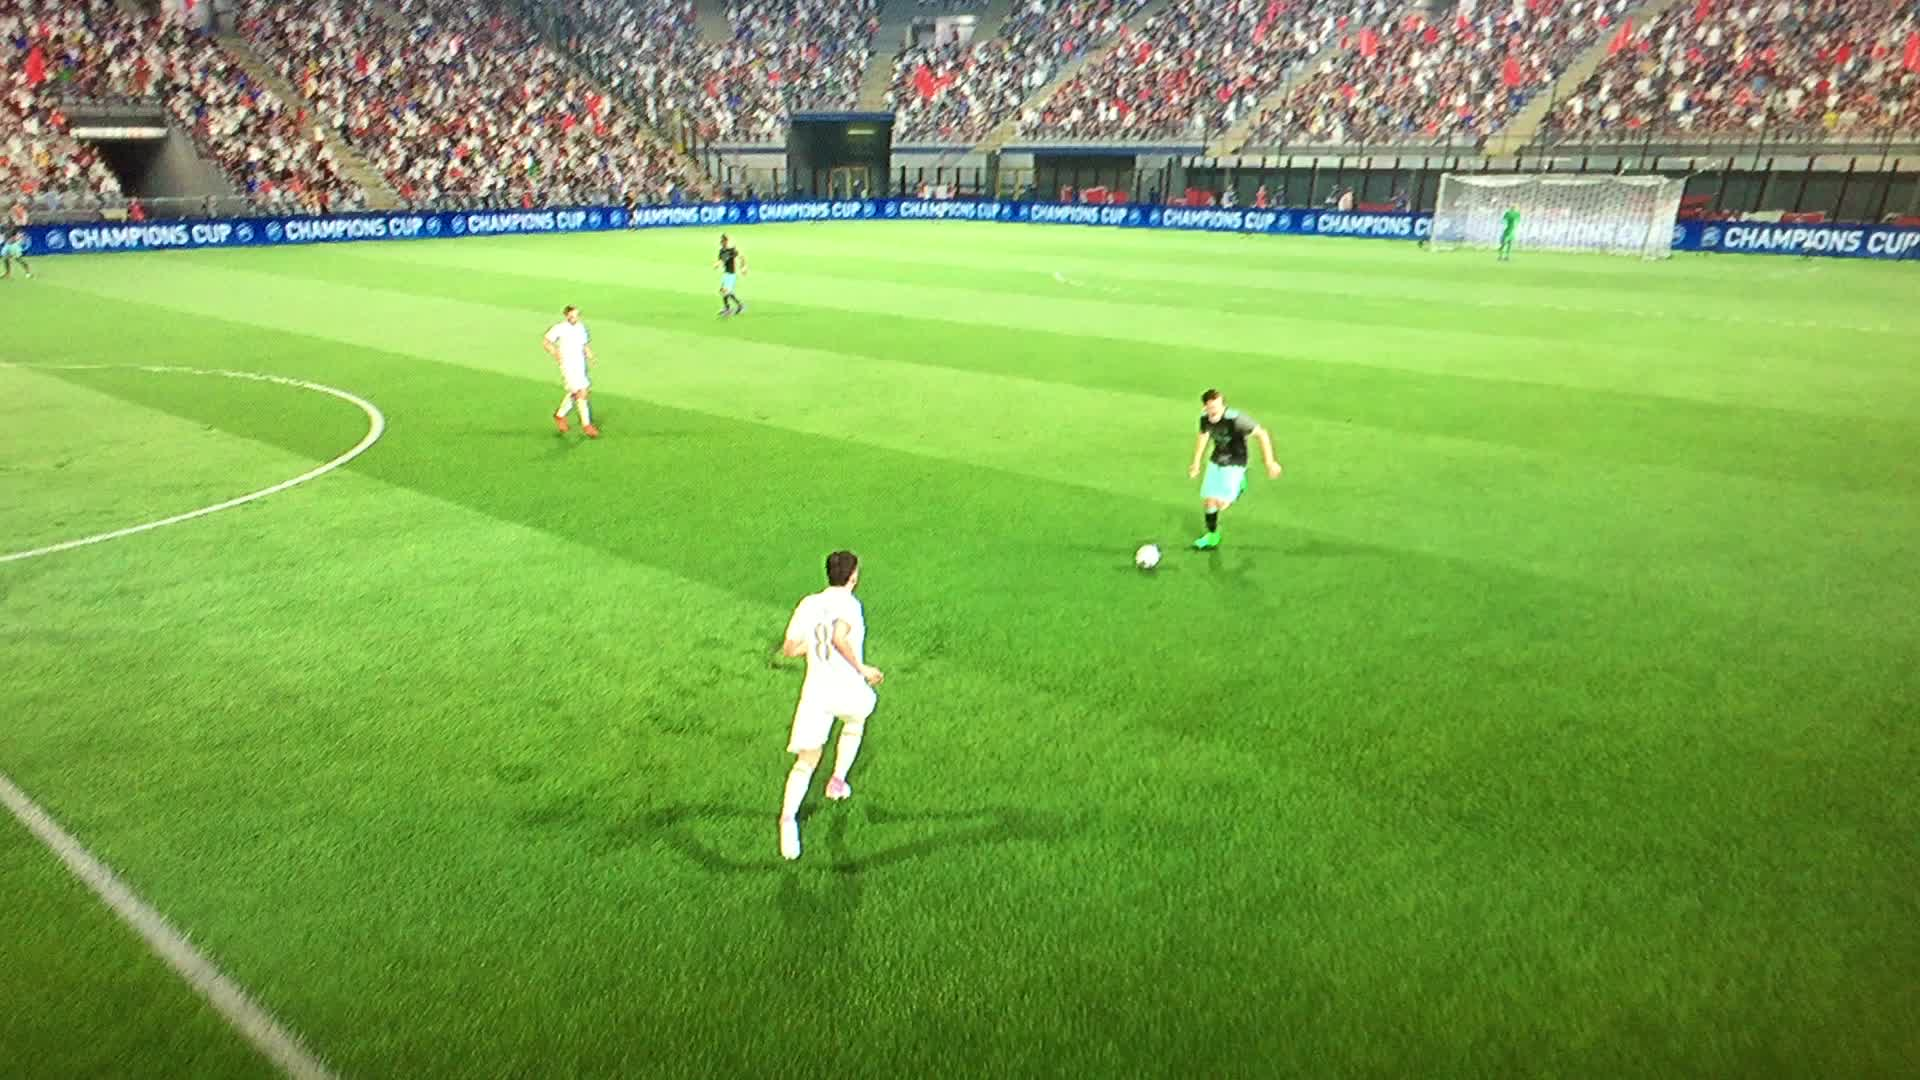 FifaCareers, Imagine that face stomp in real life GIFs